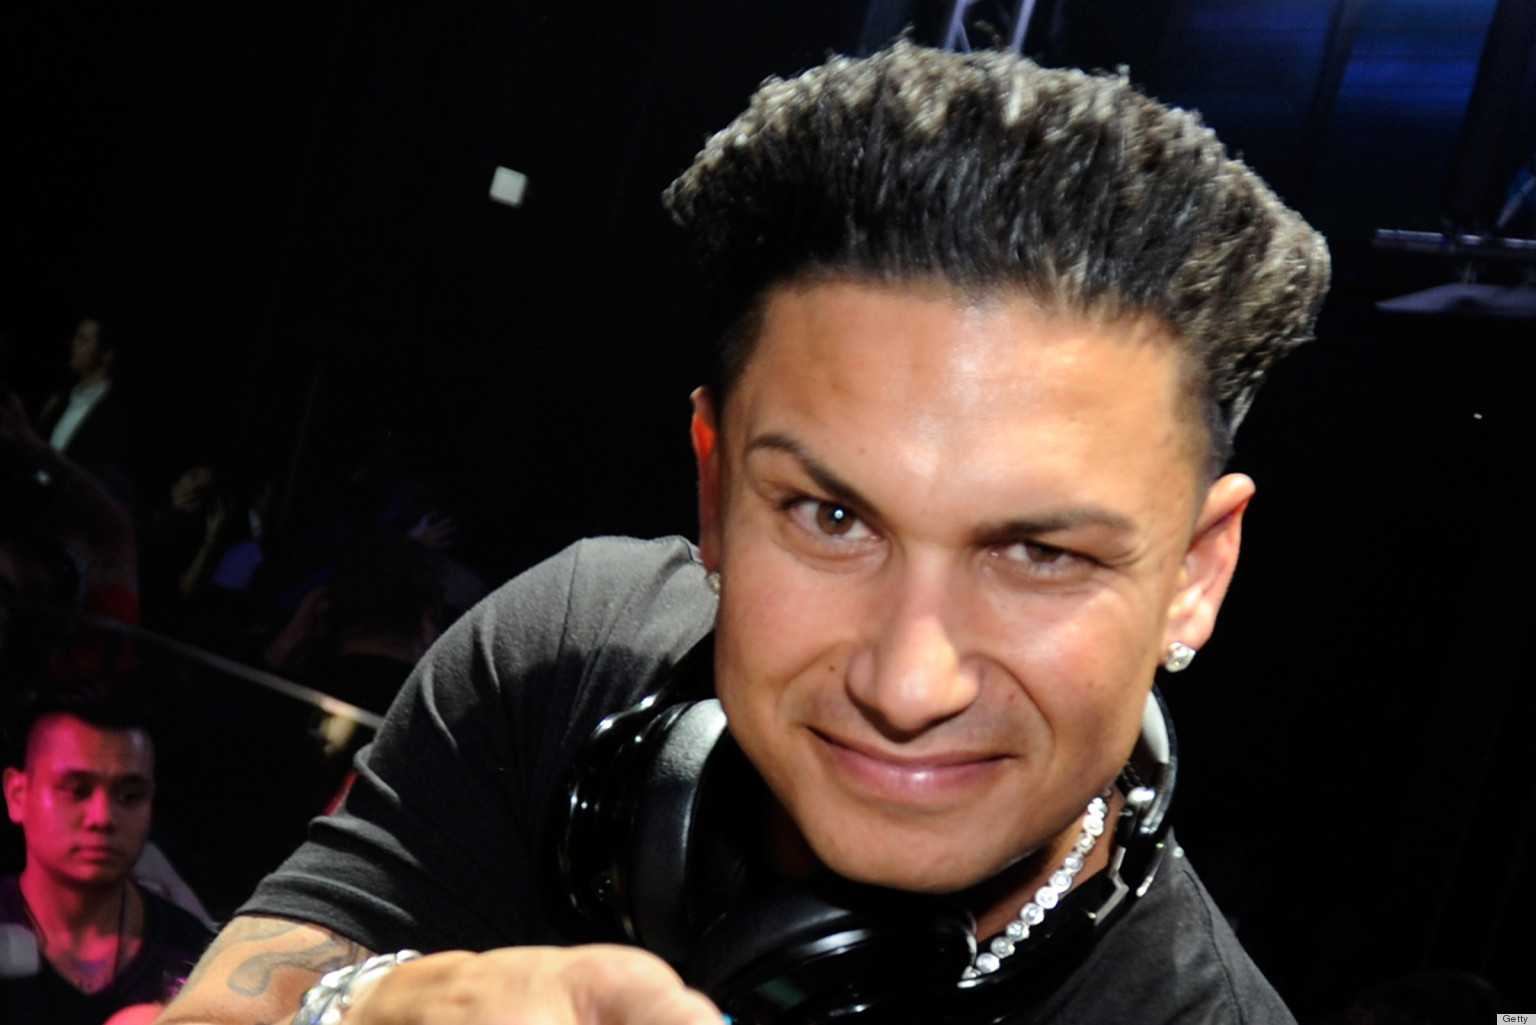 Pauly D New Hair Totally Transforms Jersey Shore Star PHOTOS